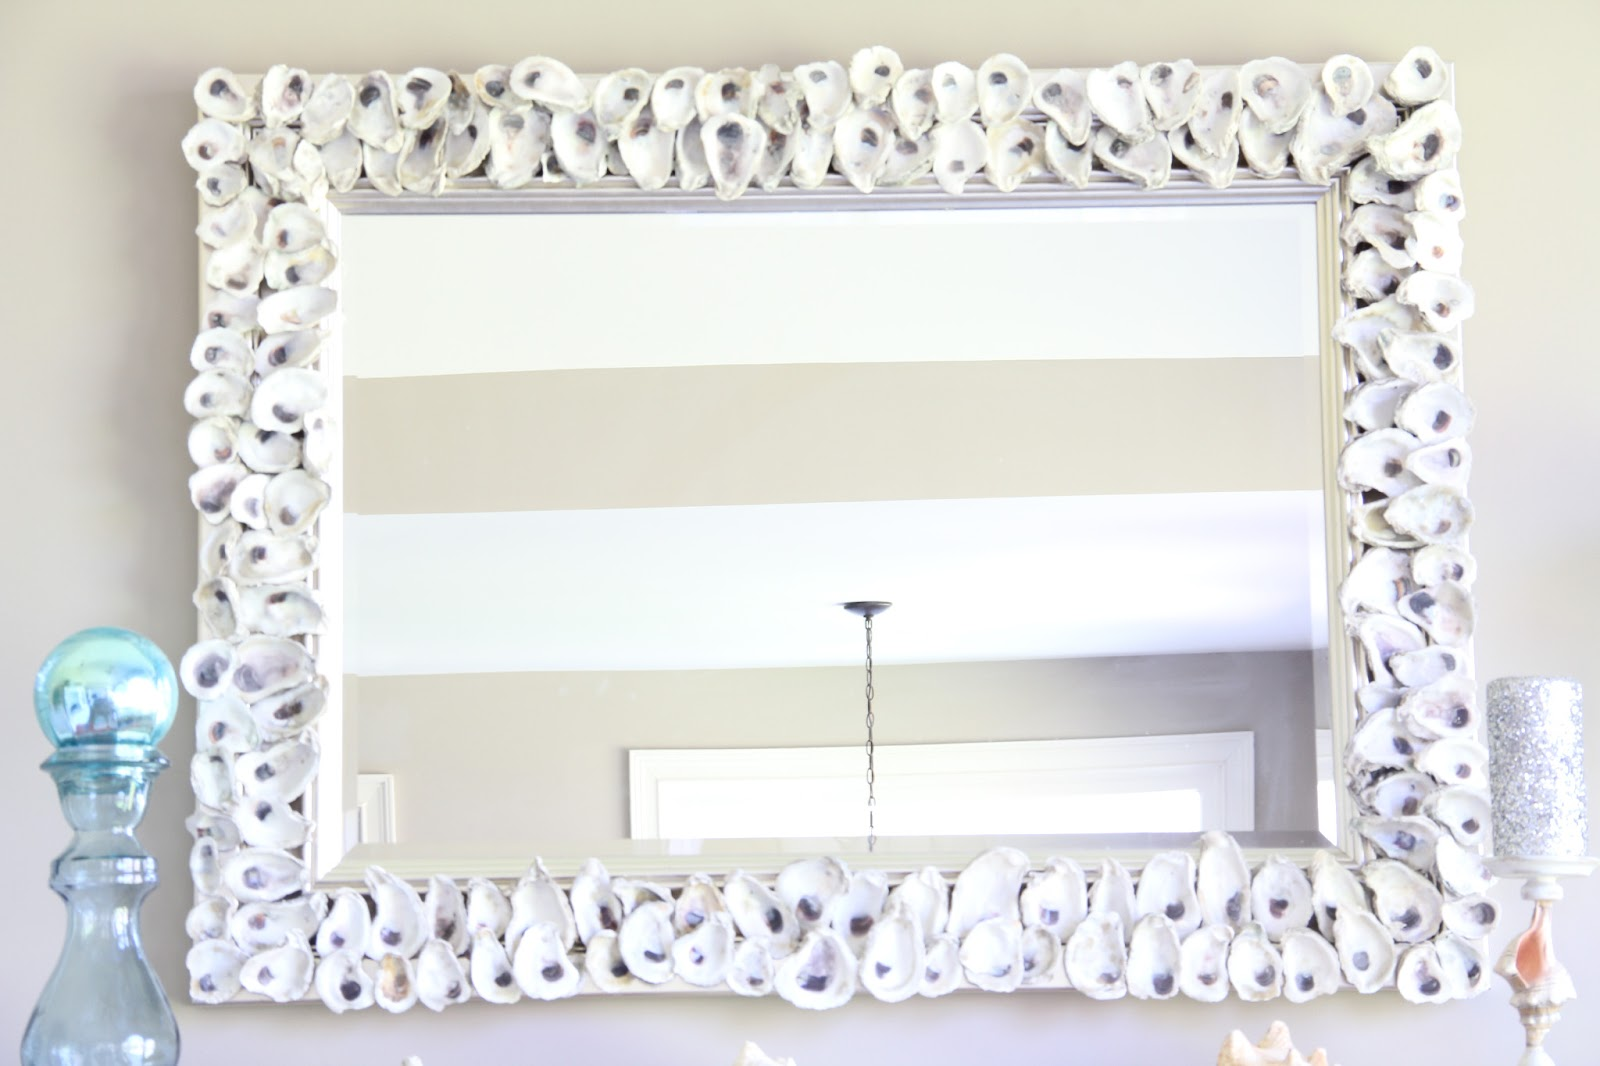 Southern Soul Mates Oyster Shell Mirror Chandelier DIY – Diy Shell Chandelier